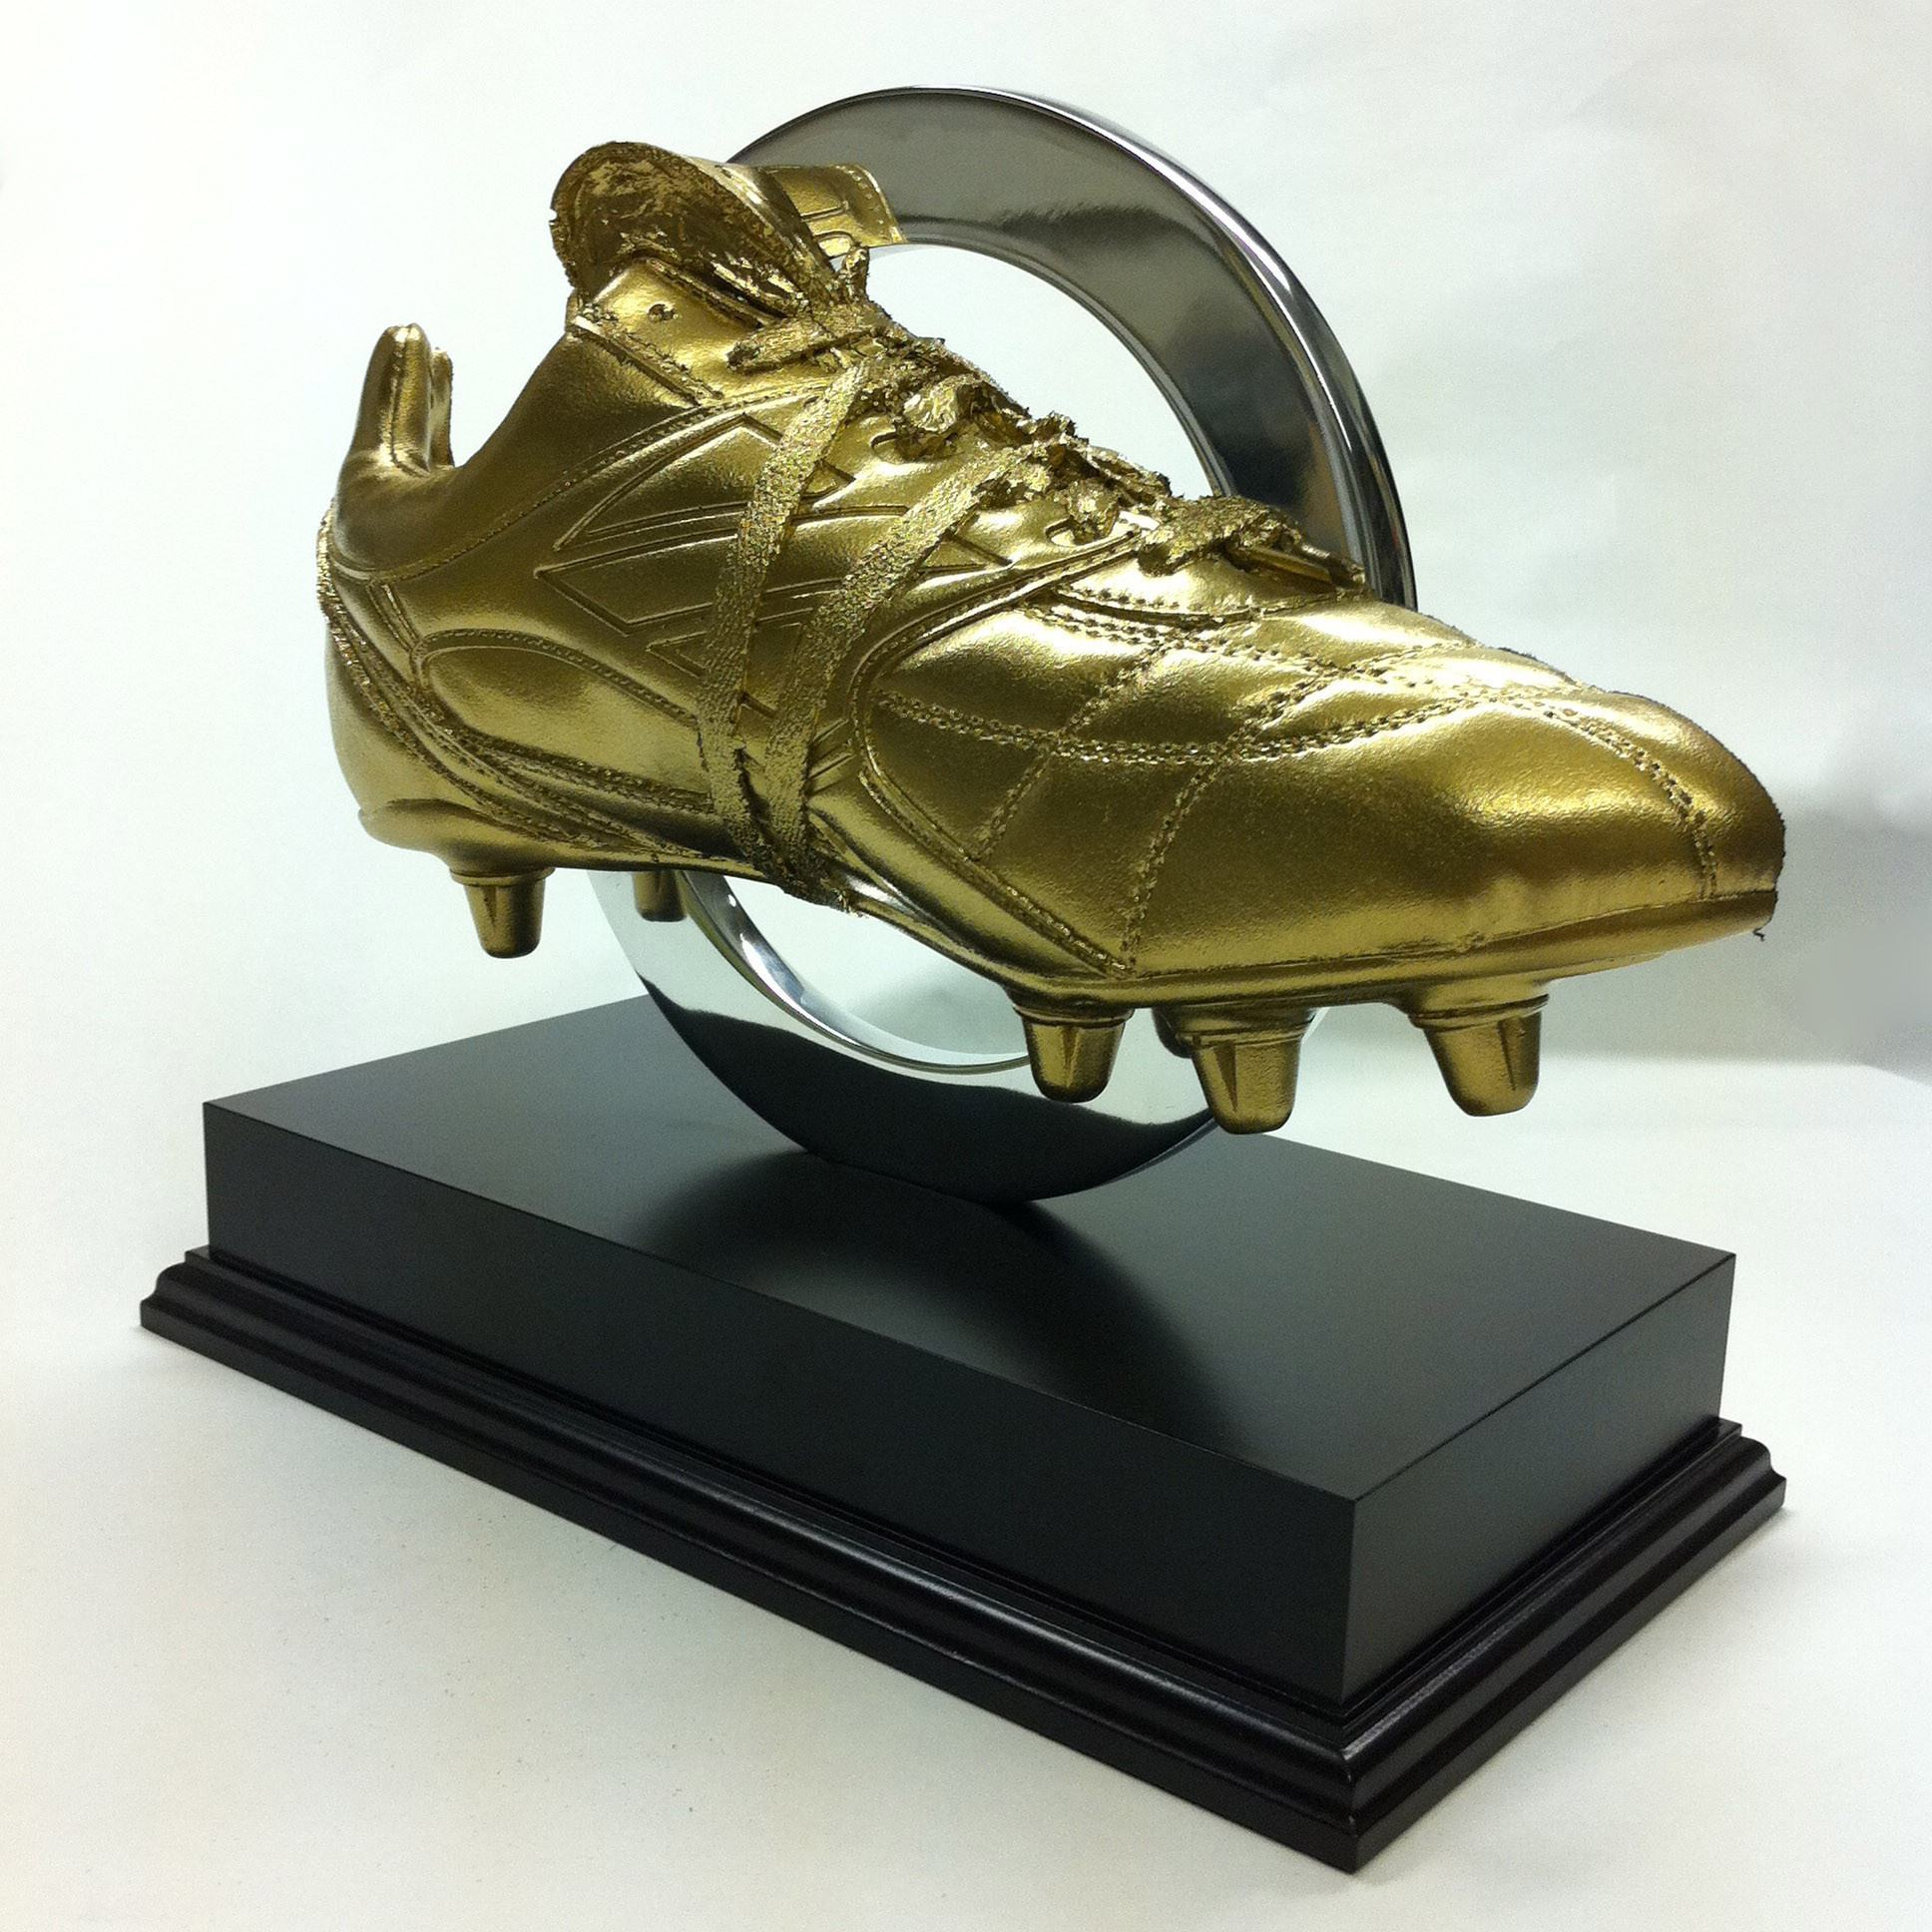 Rugby Award Bespoke Mixed Media Awards Creative Awards